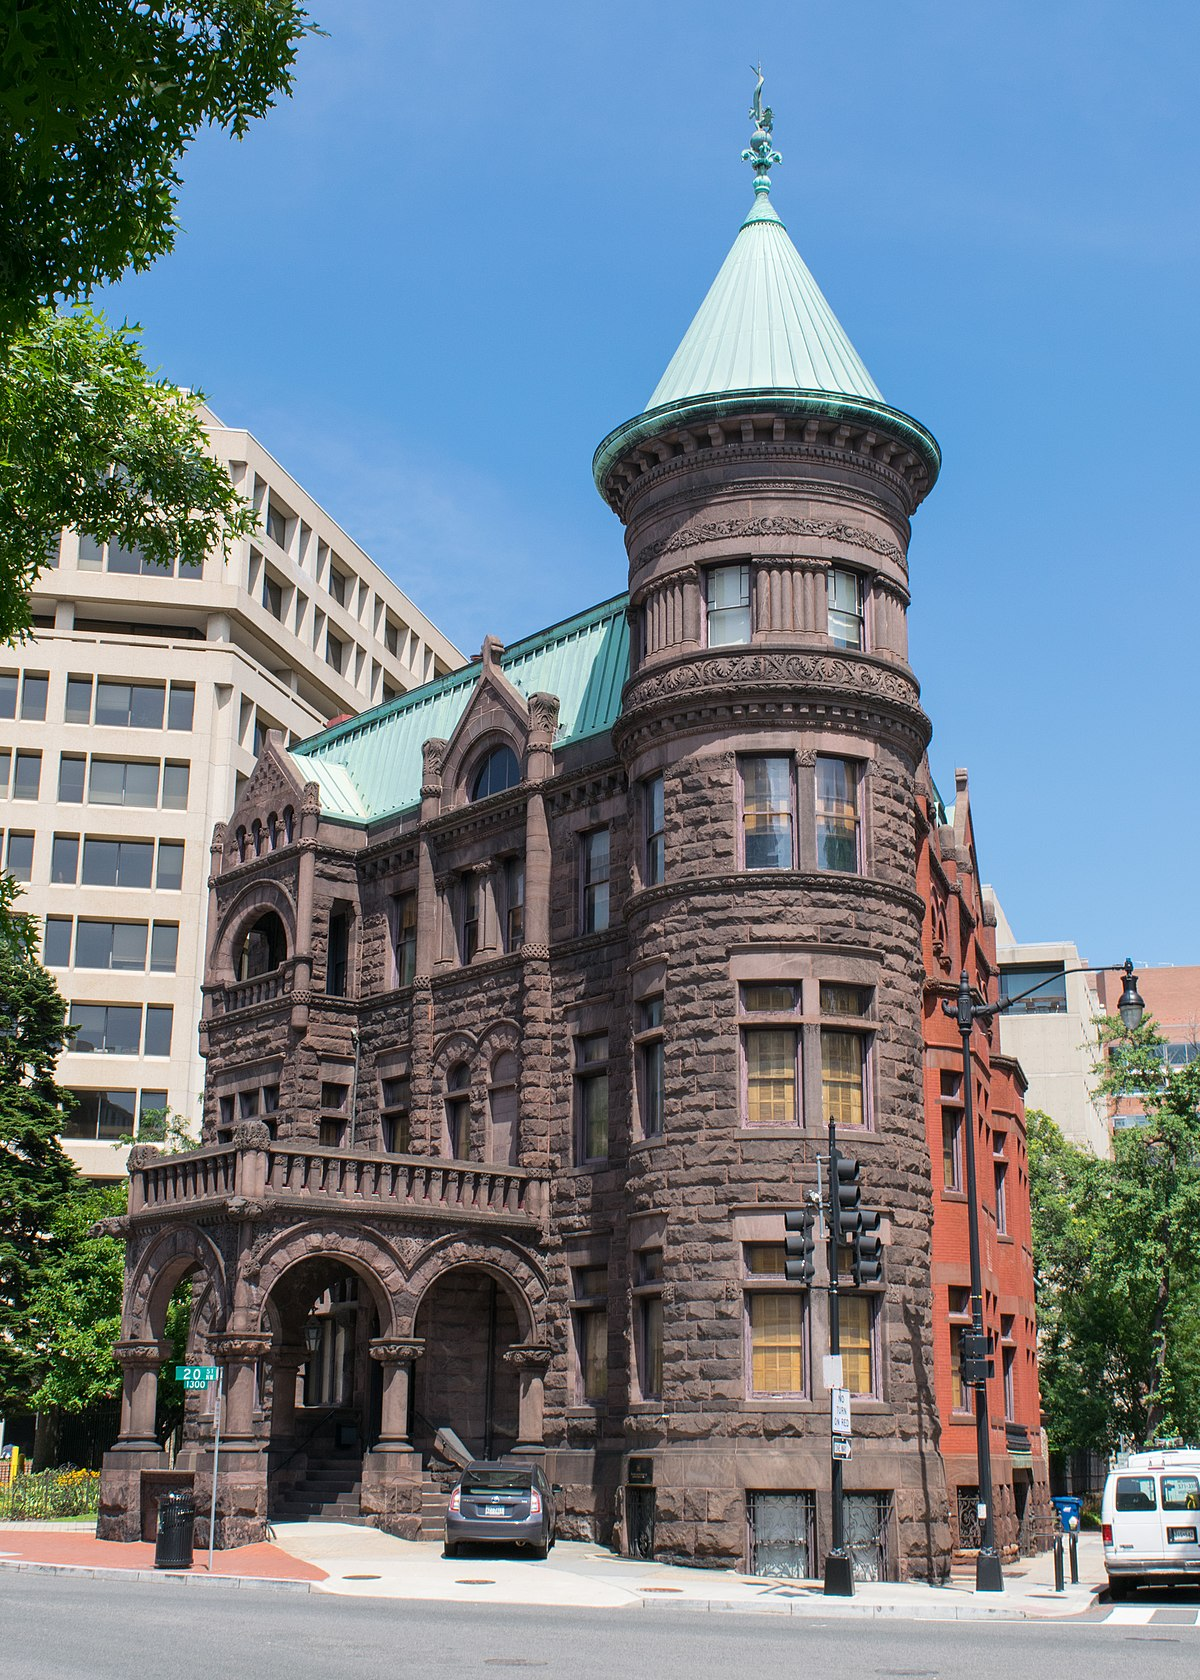 Heurich House Museum - Wikipedia